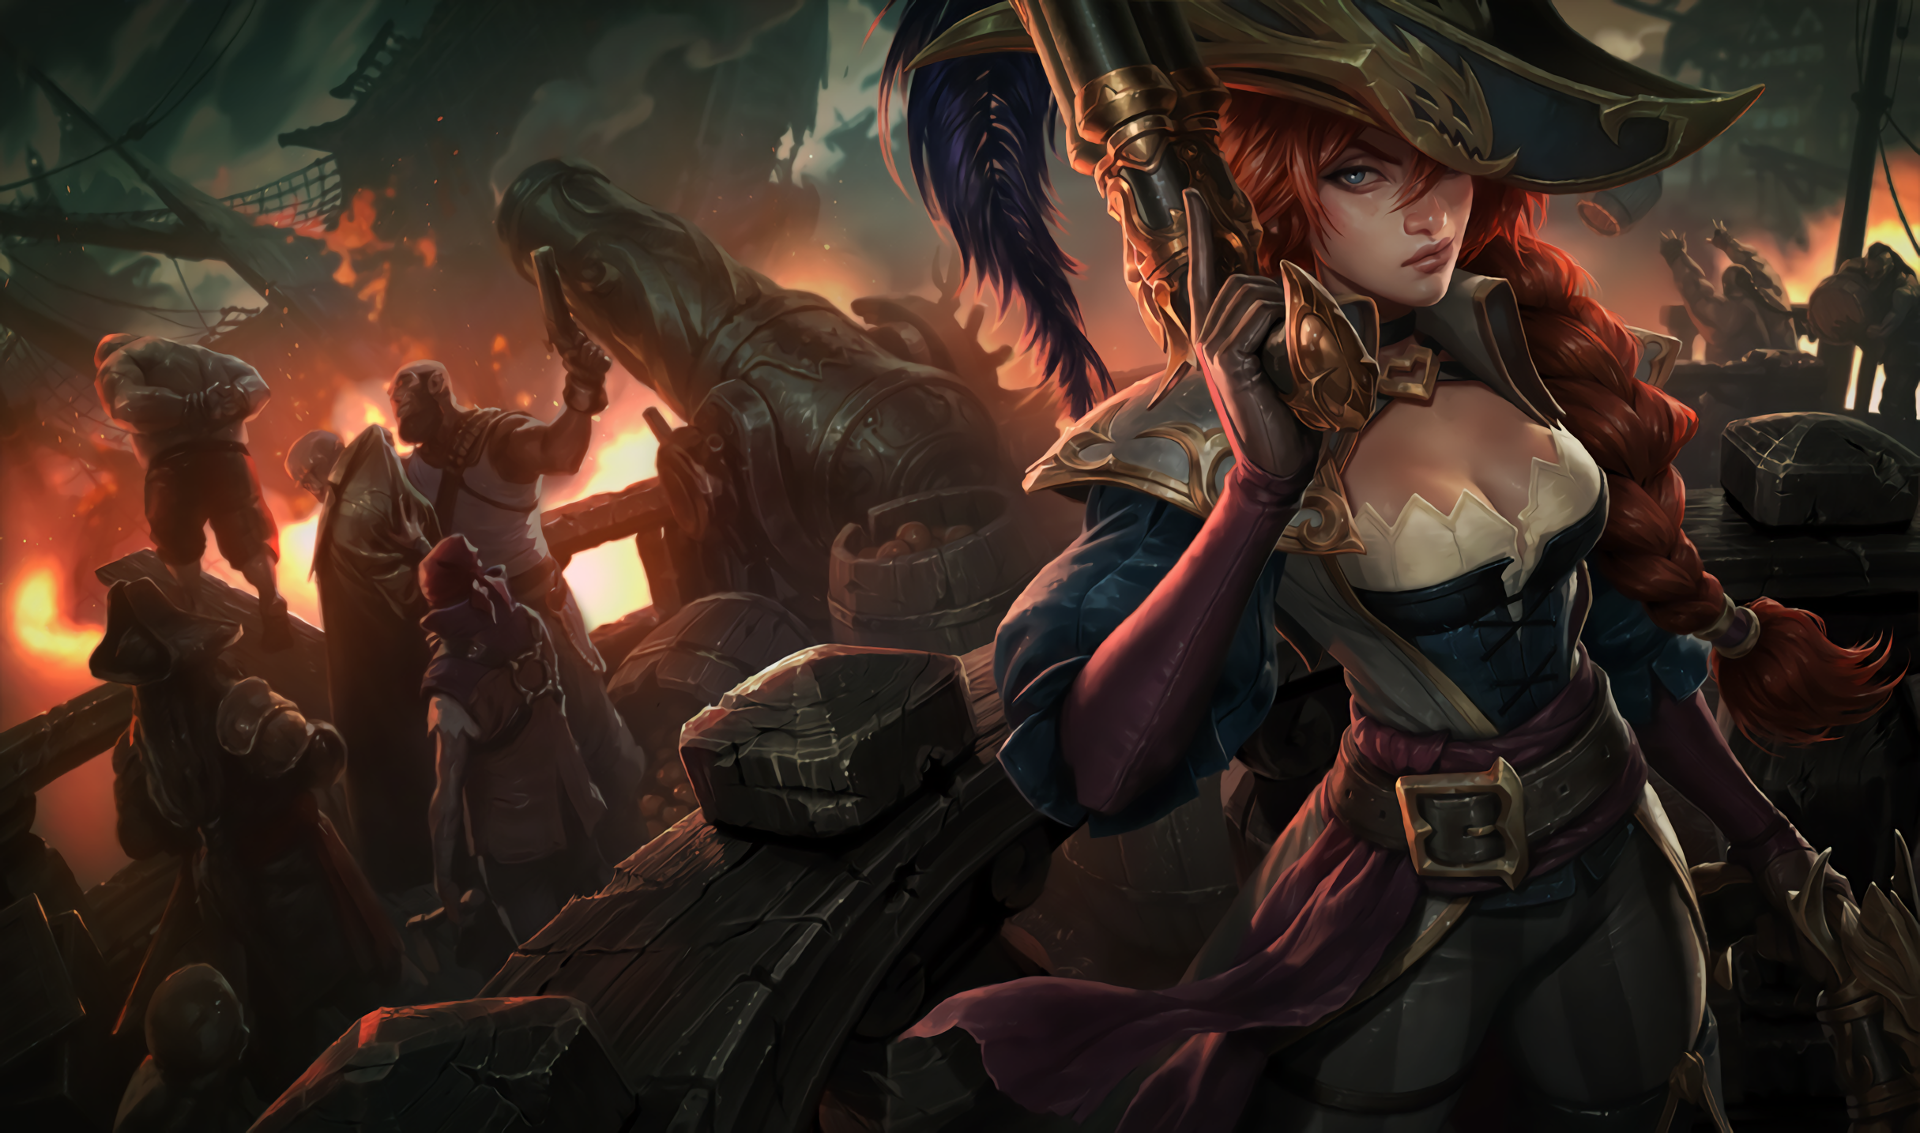 League Of Legends Miss Fortune Wallpaper: Captain Fortune Full HD Wallpaper And Background